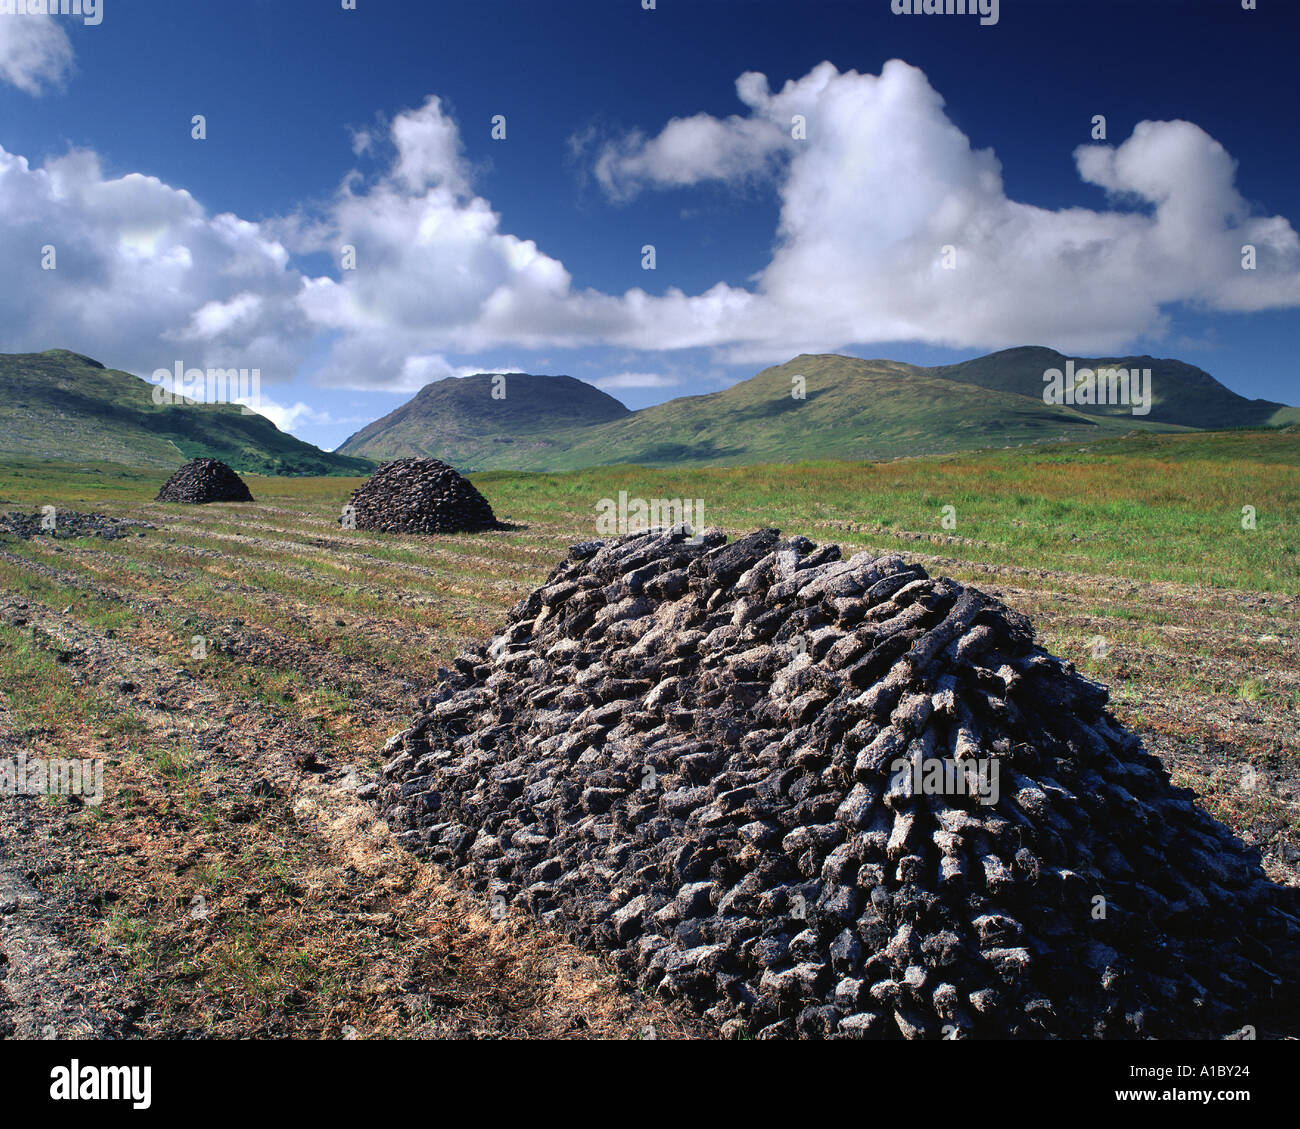 IE - CO. GALWAY: Cutting the Peat in the Inagh Valley of Connemara - Stock Image